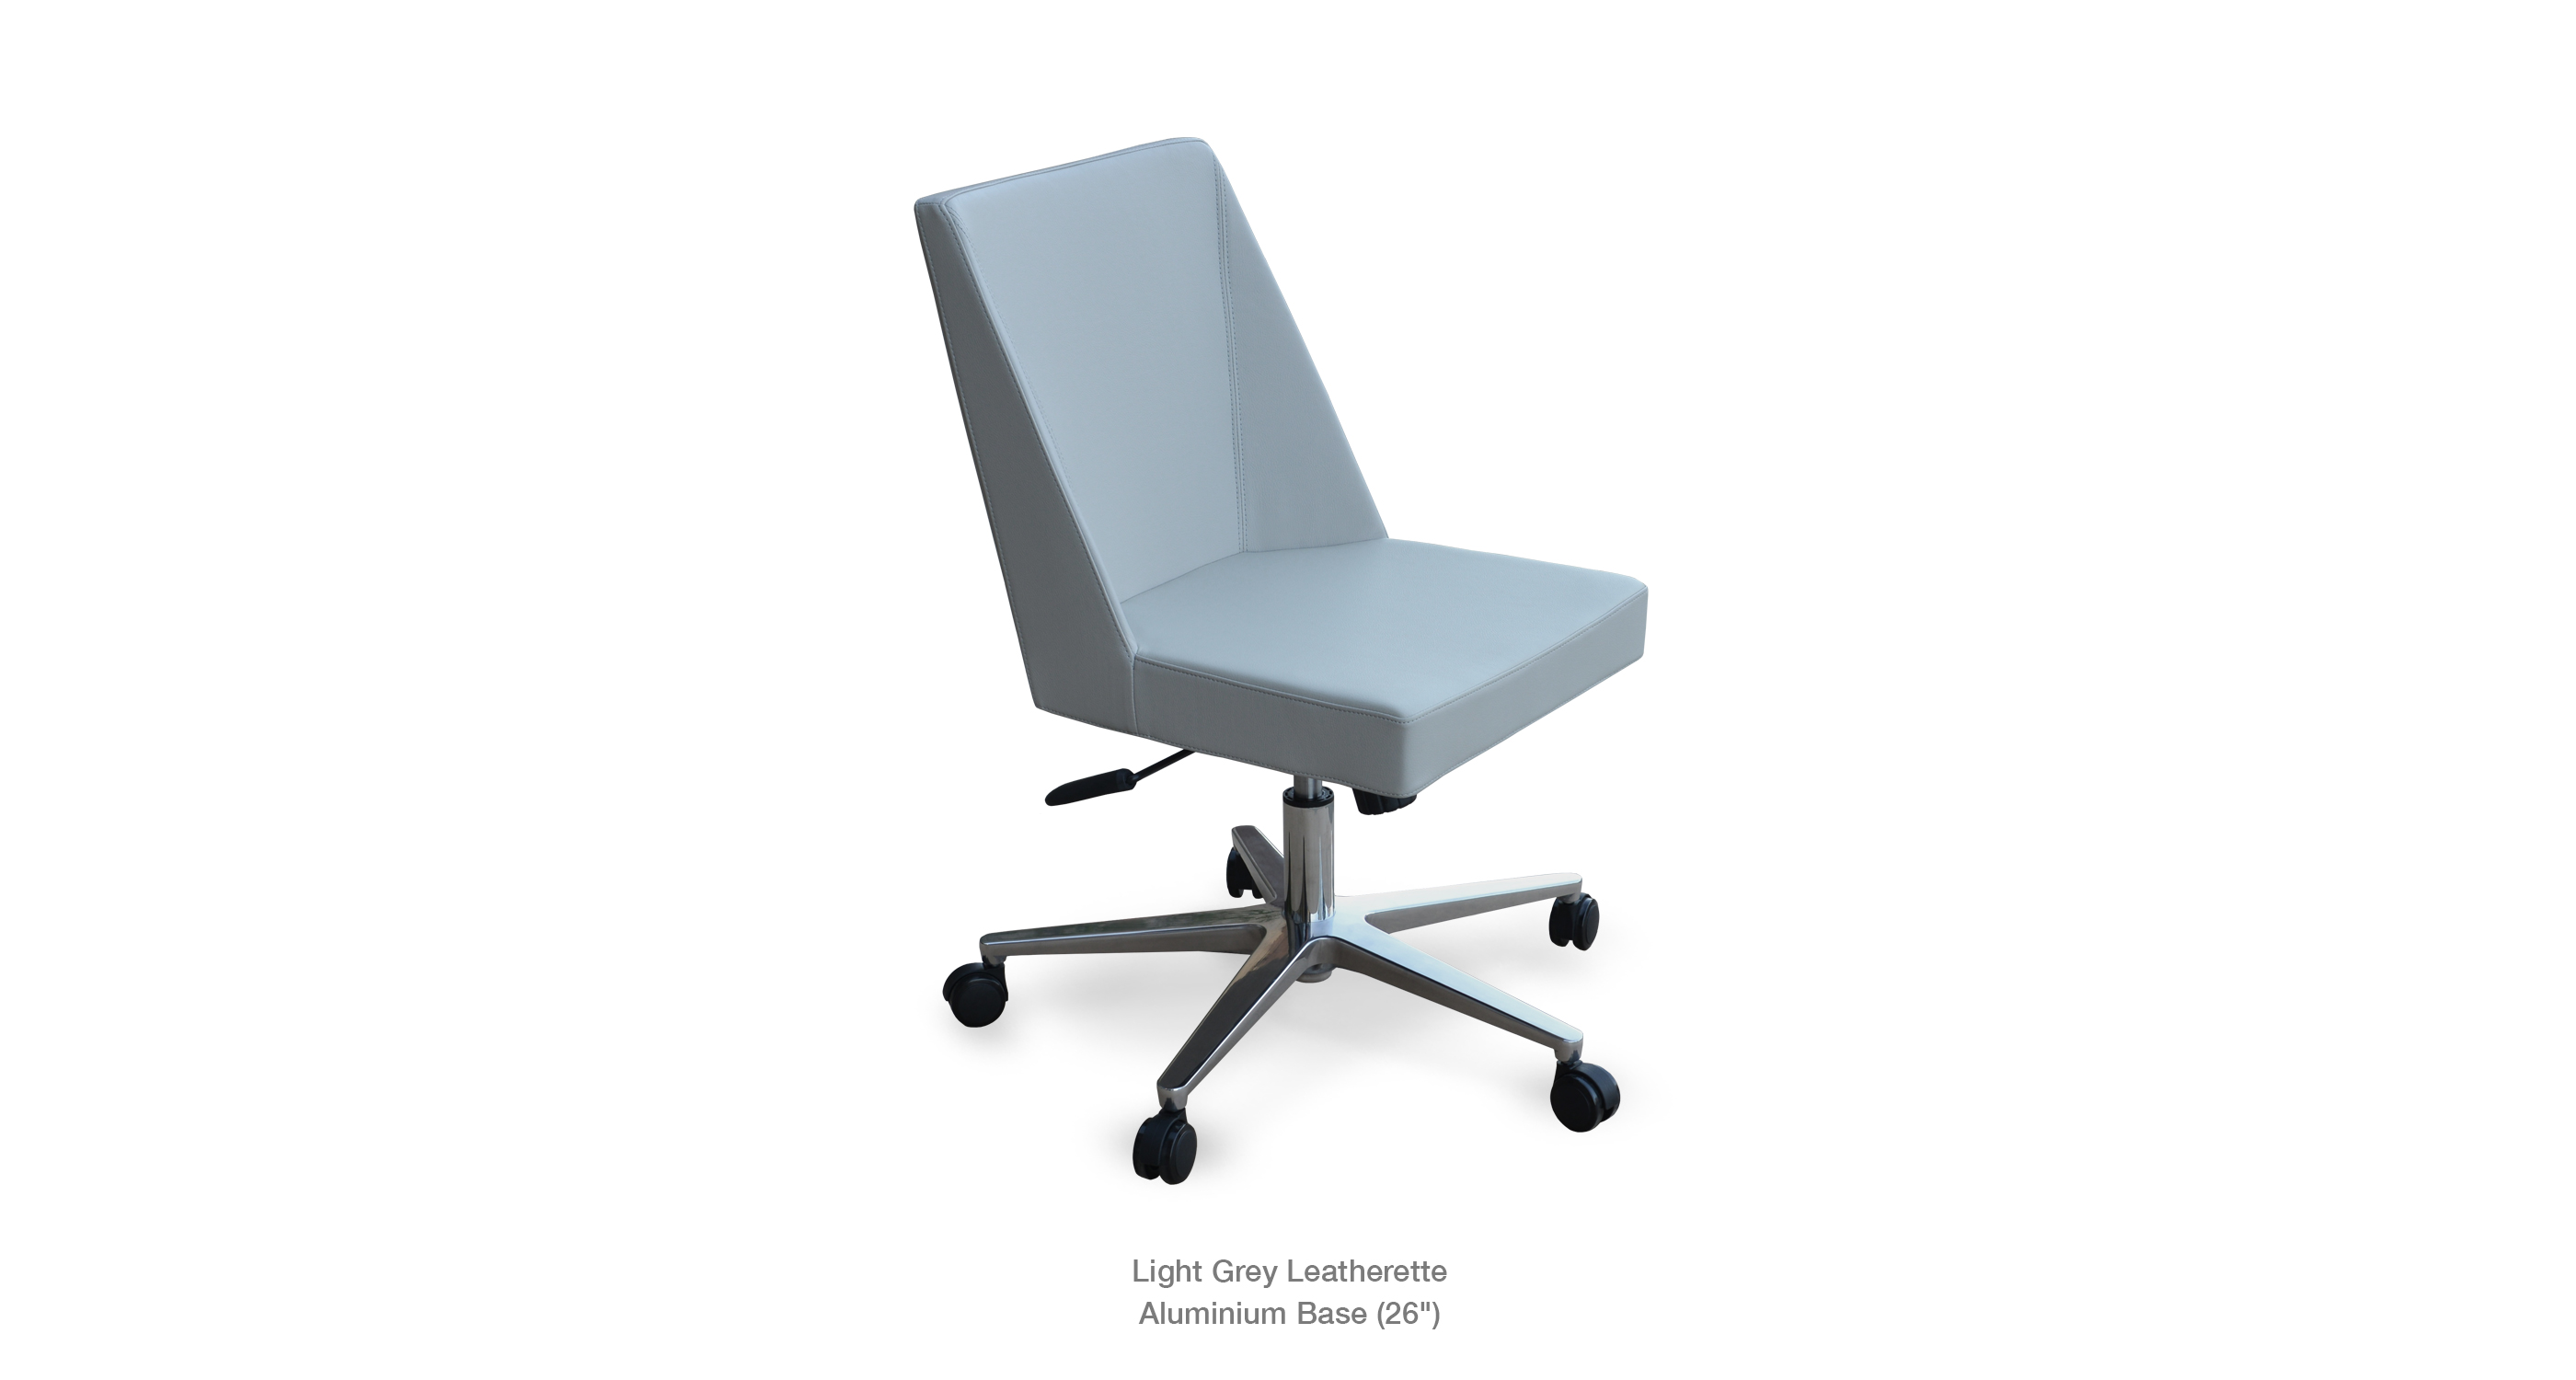 Prisma Office Light Grey Leatherette